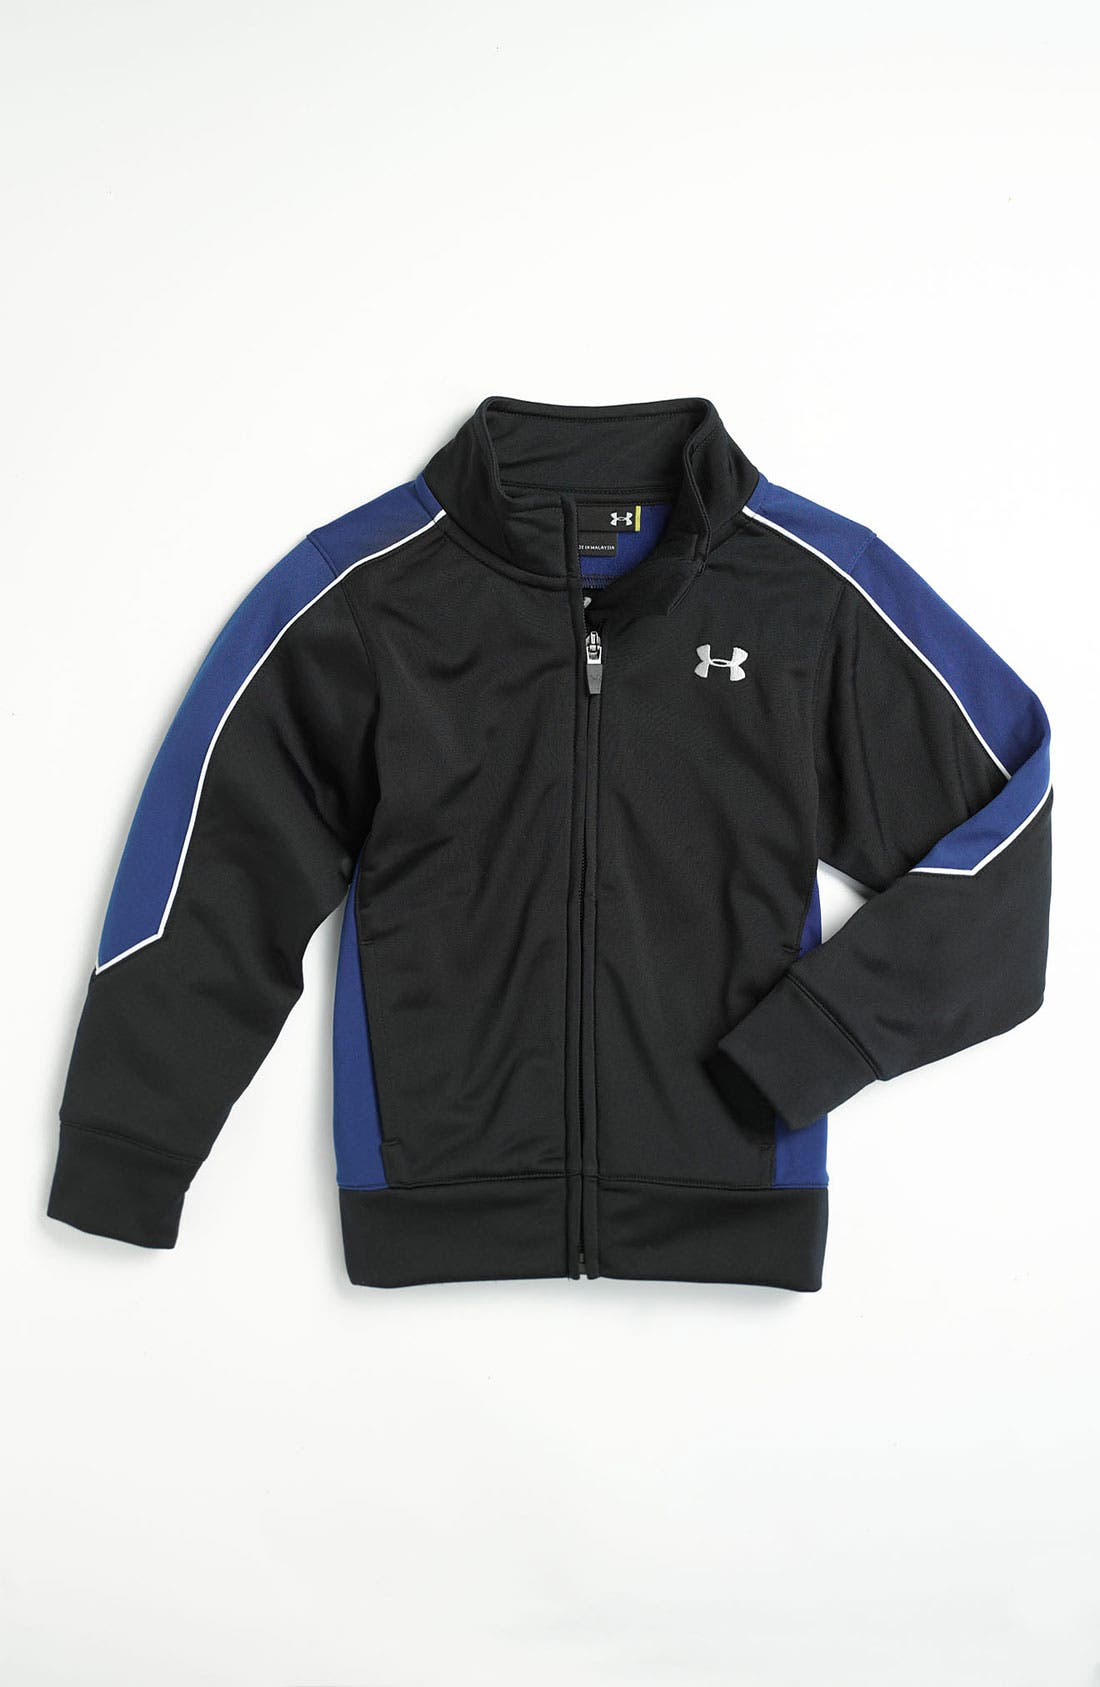 Main Image - Under Armour Jacket (Toddler)